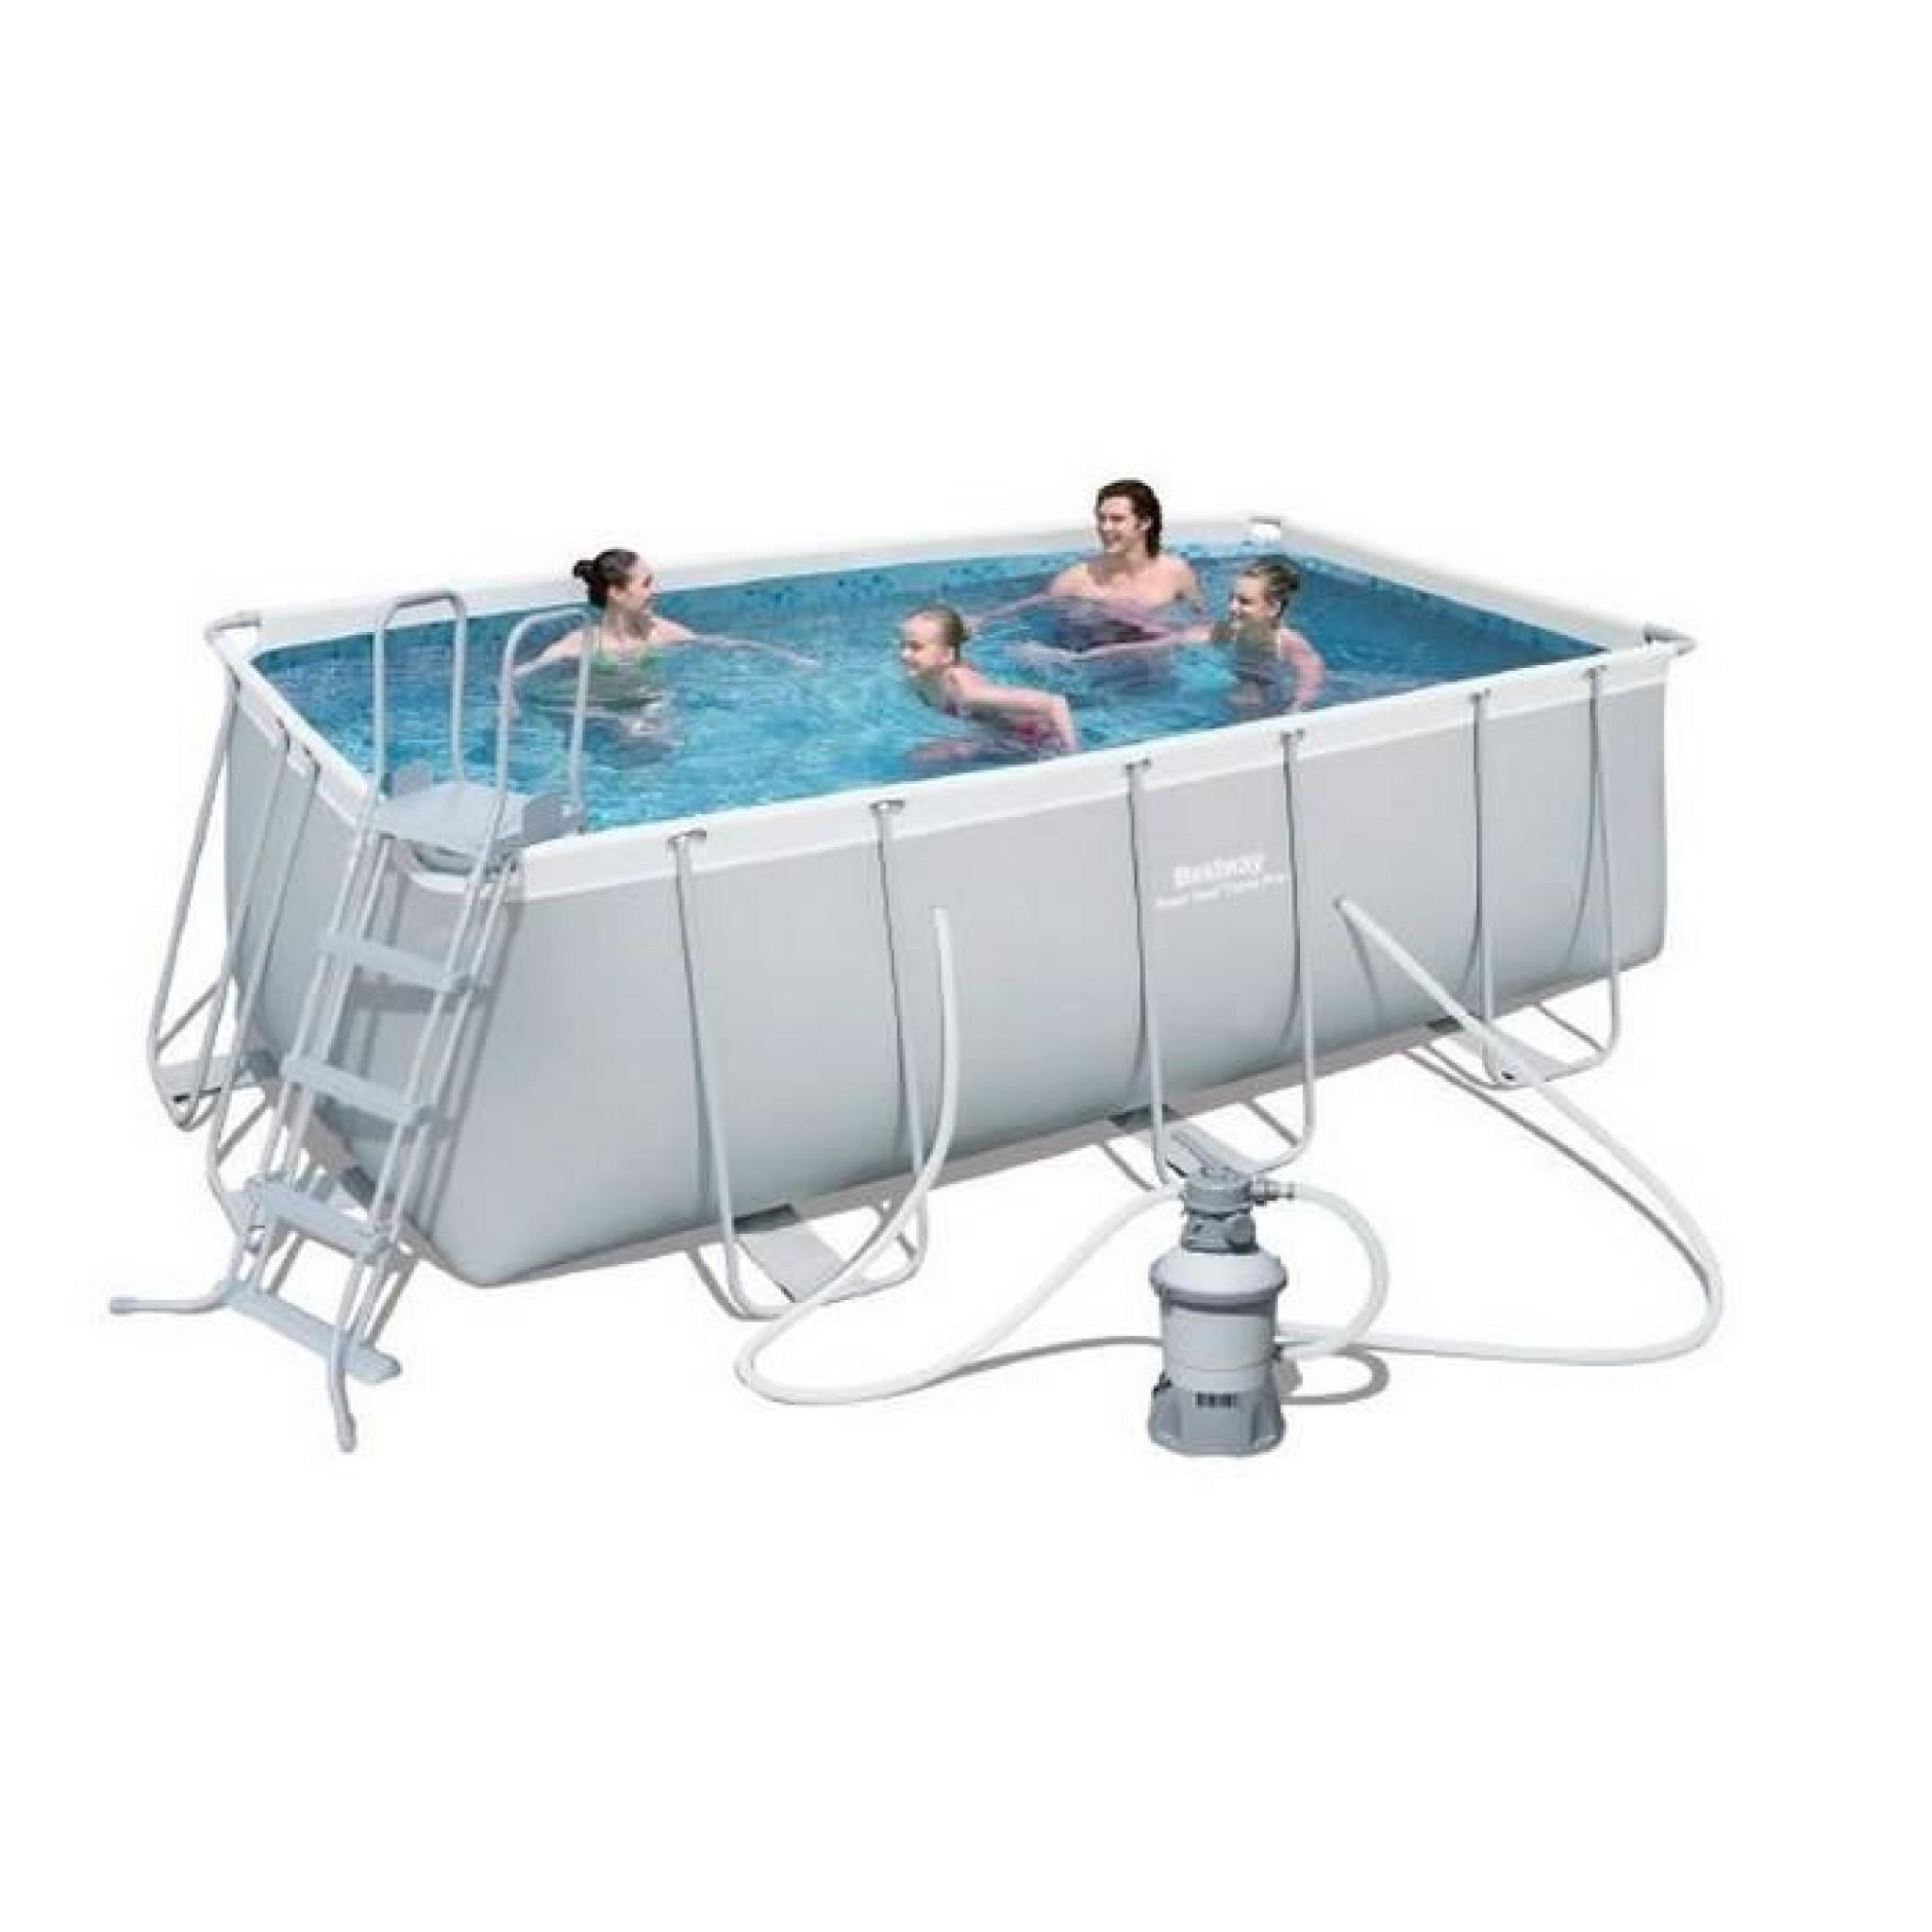 Bestway piscine tubulaire rectangulaire for Bestway piscine